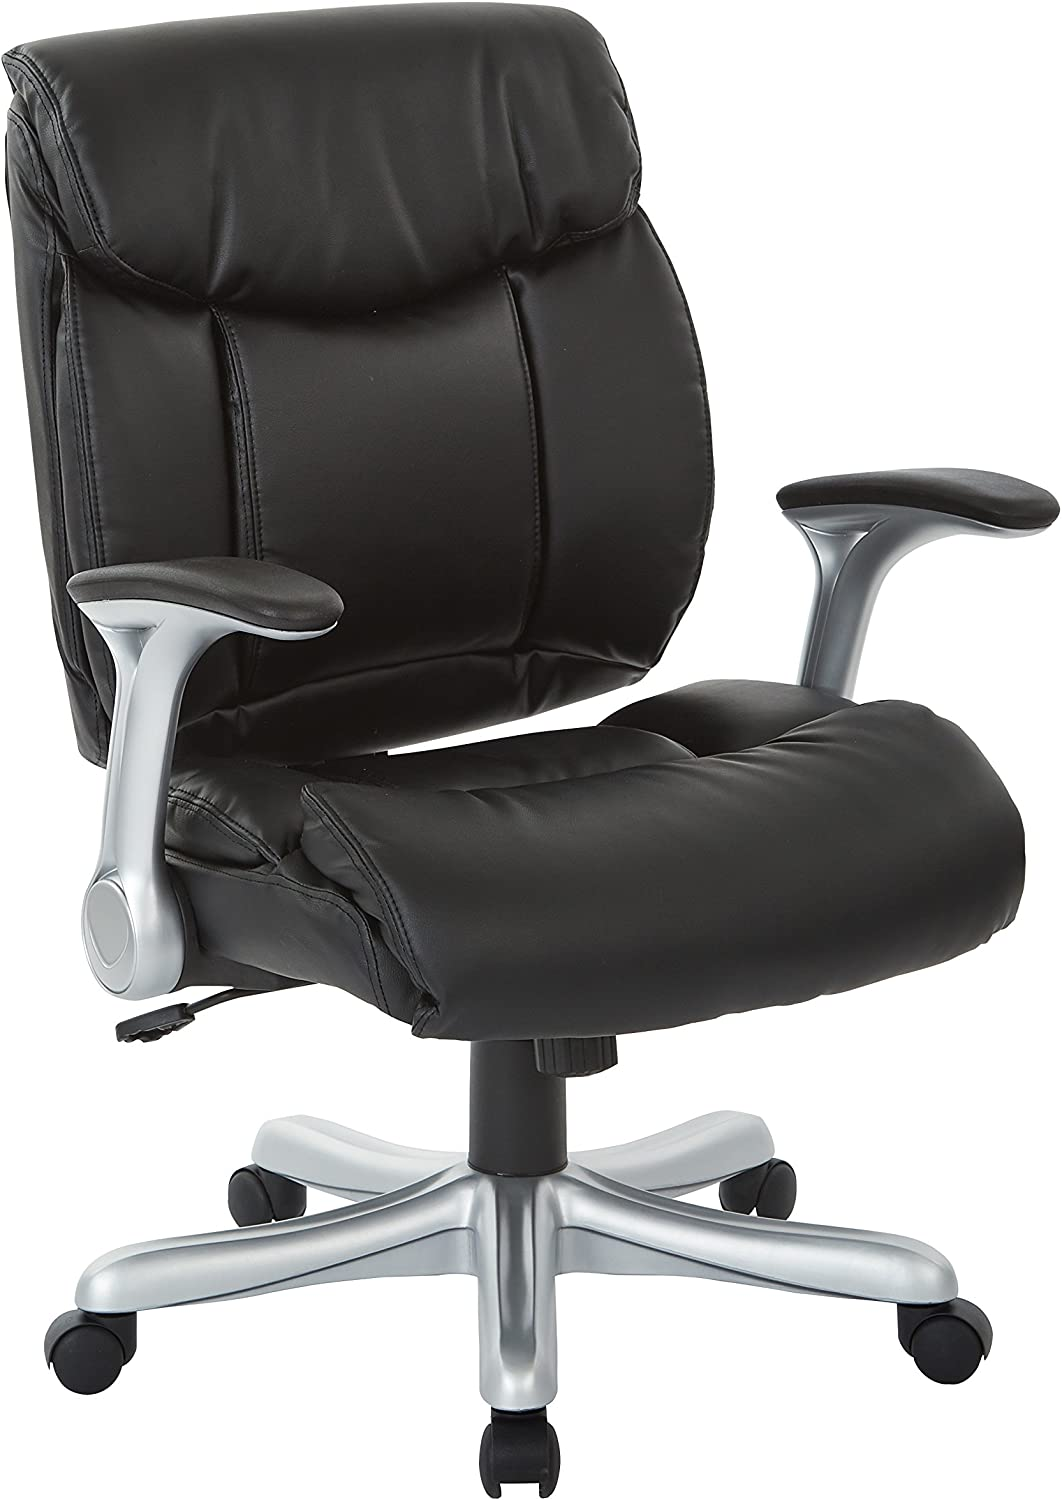 Office Star Bonded Leather Seat and Back with 2-Tone Stitching, Padded Flip Arms Executives Chair with Silver Finish Accents, Black